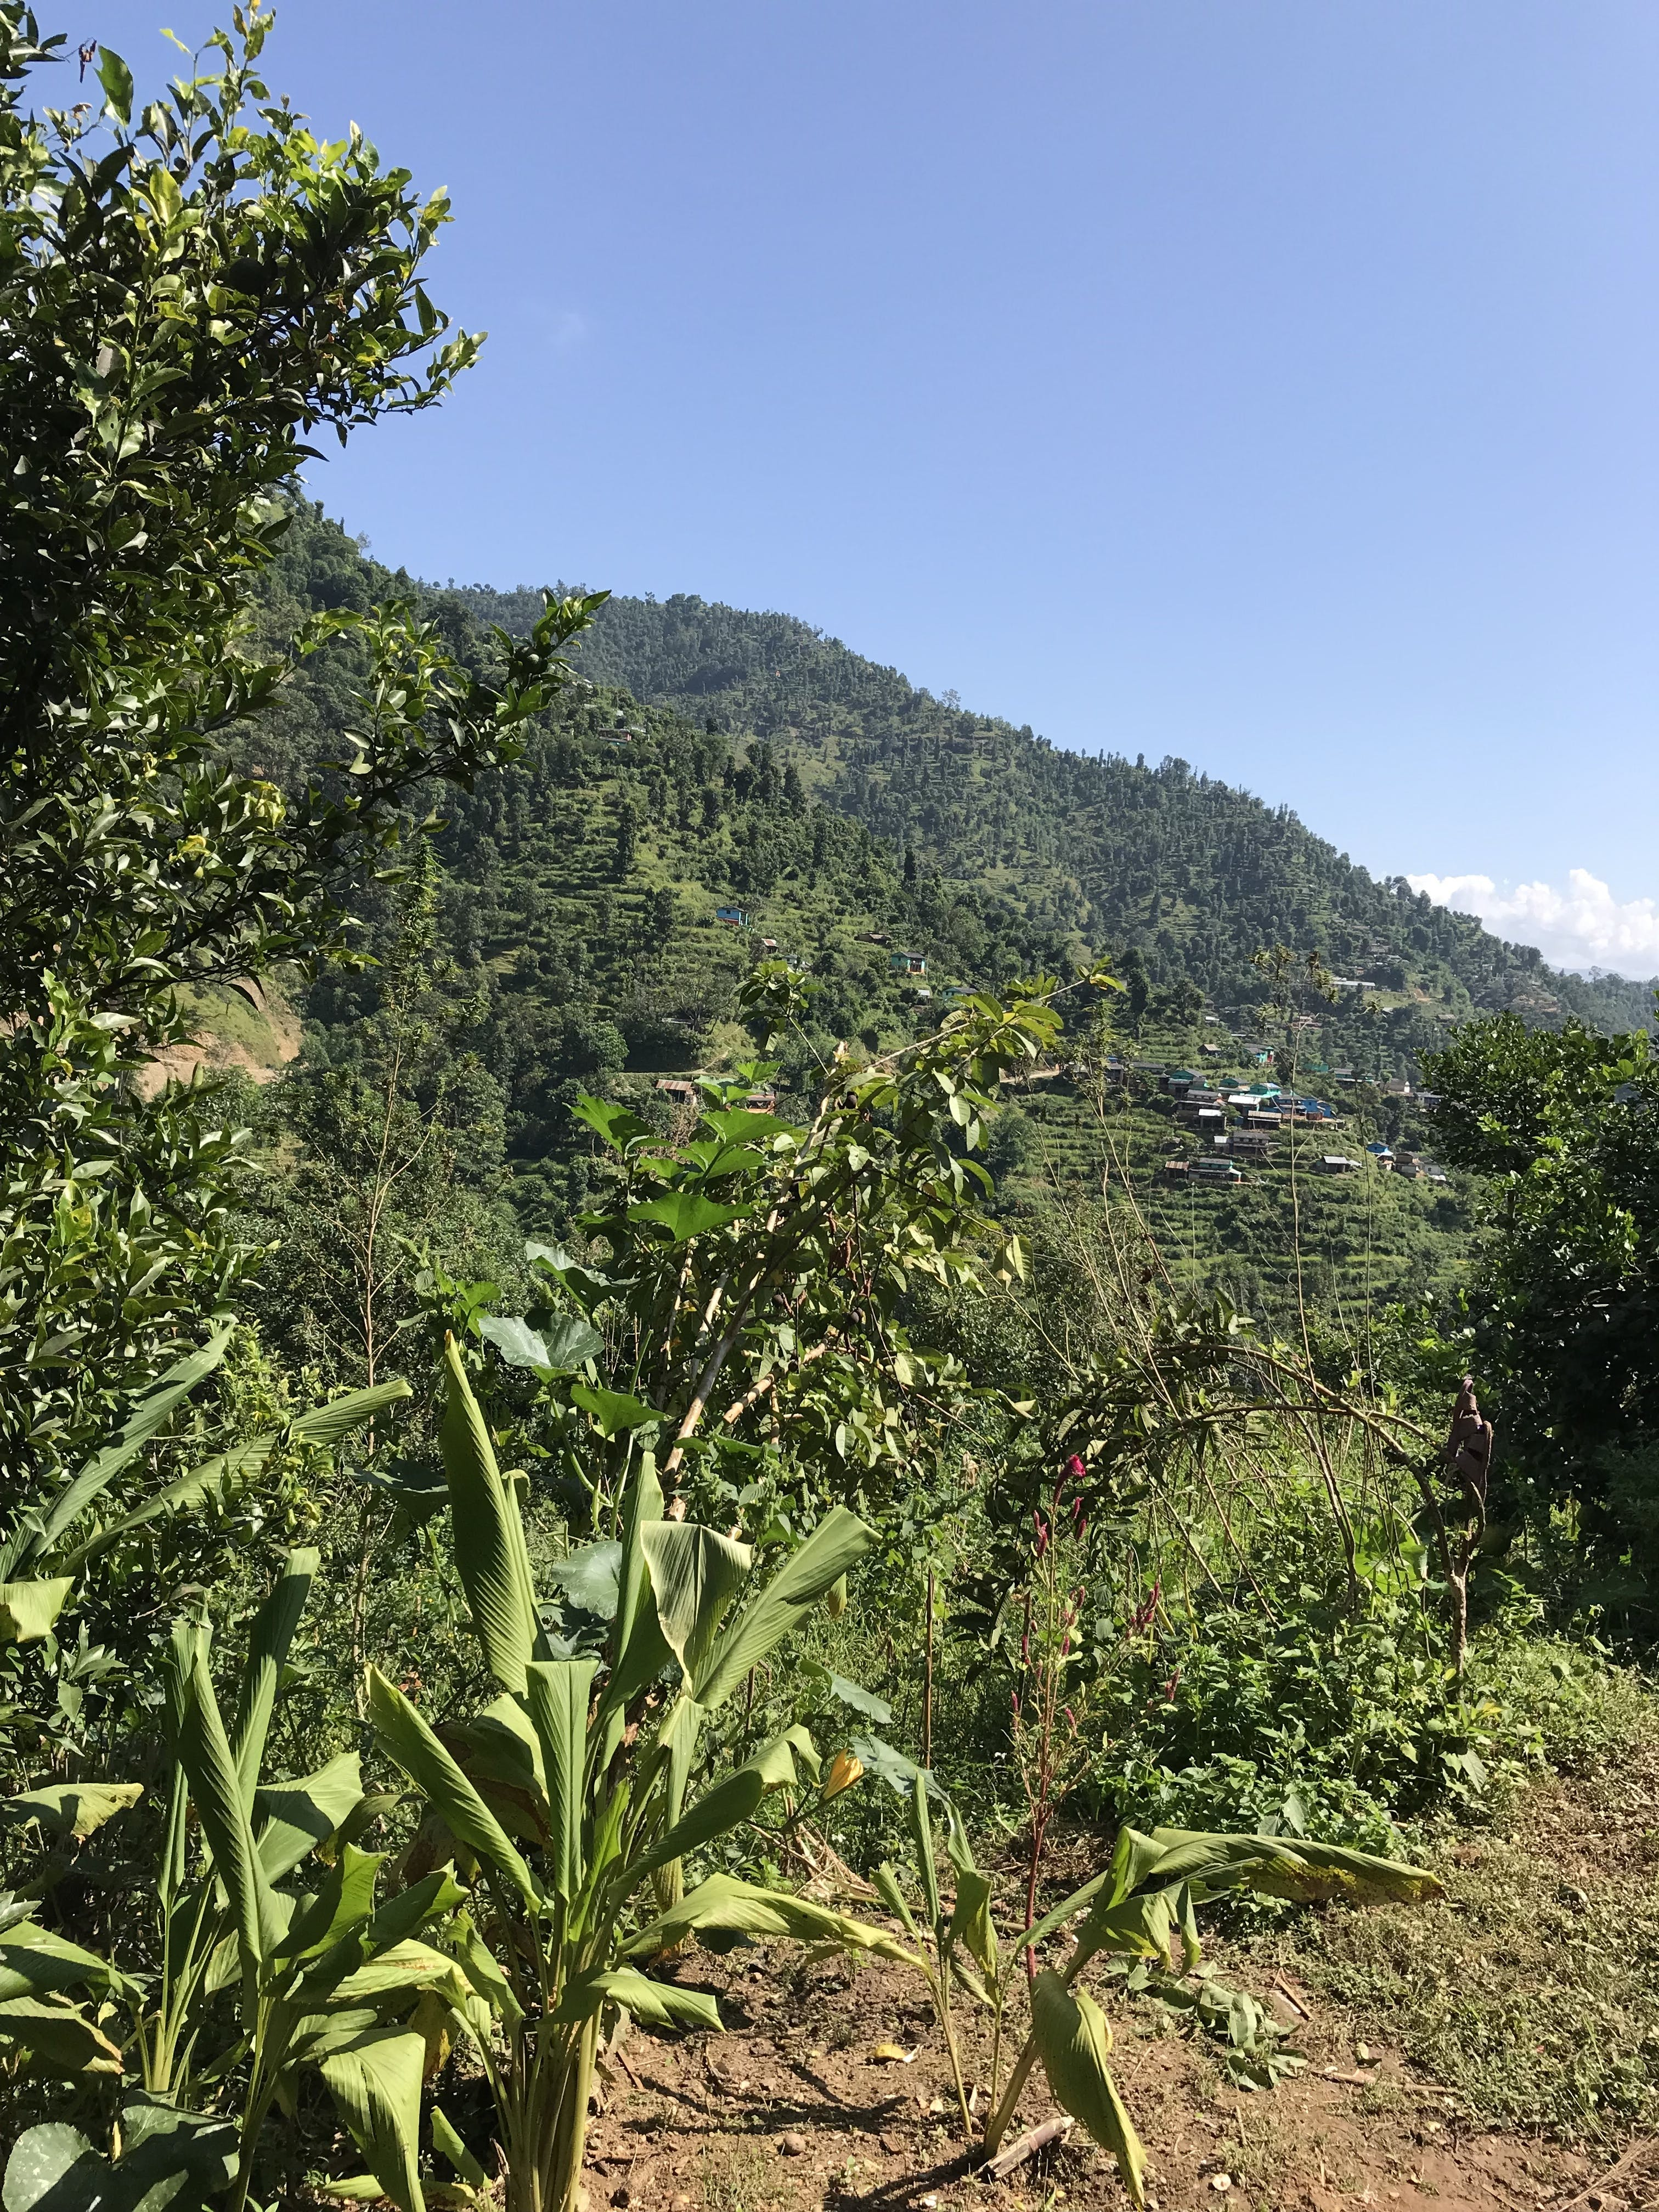 Free stock photo of Natural beauty Baglung Nepal